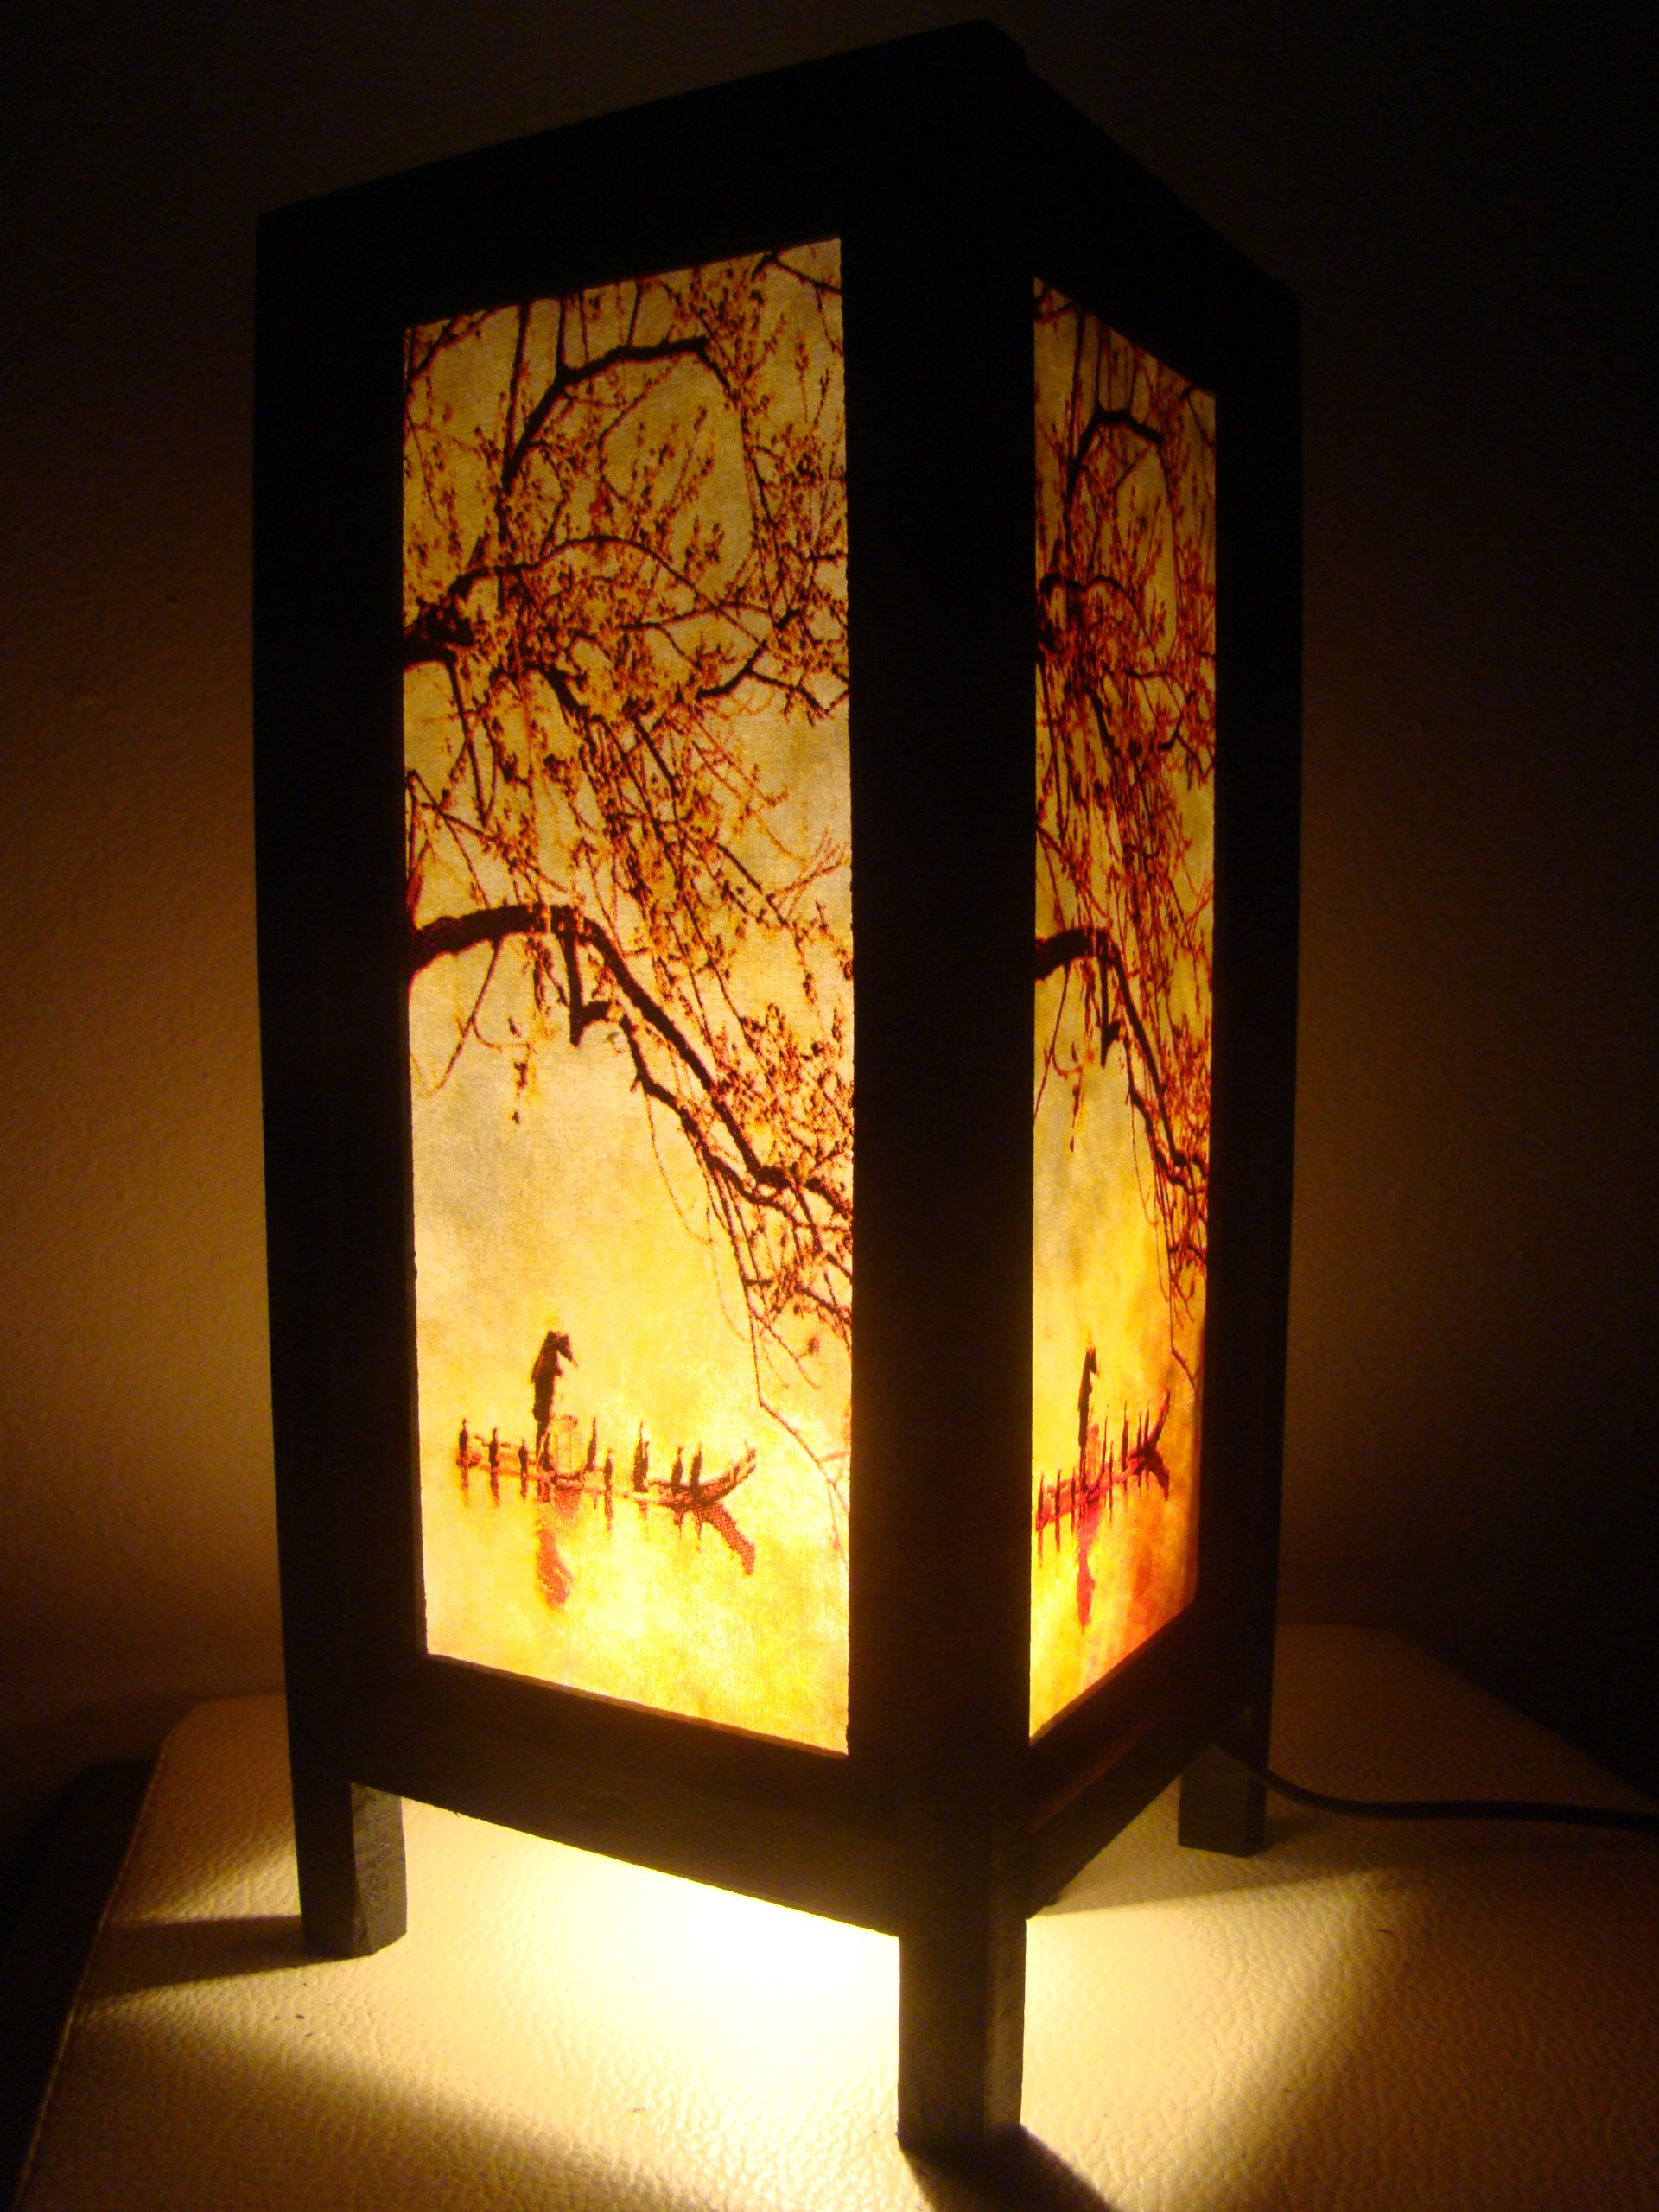 Thai Vintage Handmade Asian Oriental Handcraft China Fisherman Red Sakura Cherry Blossom Tree Branch Bedside Table Lights or Floor Wood Paper Lamp Home Decor Bedroom Decoration Modern Design from Thailand by Red berry Thailand Lanna Lamp